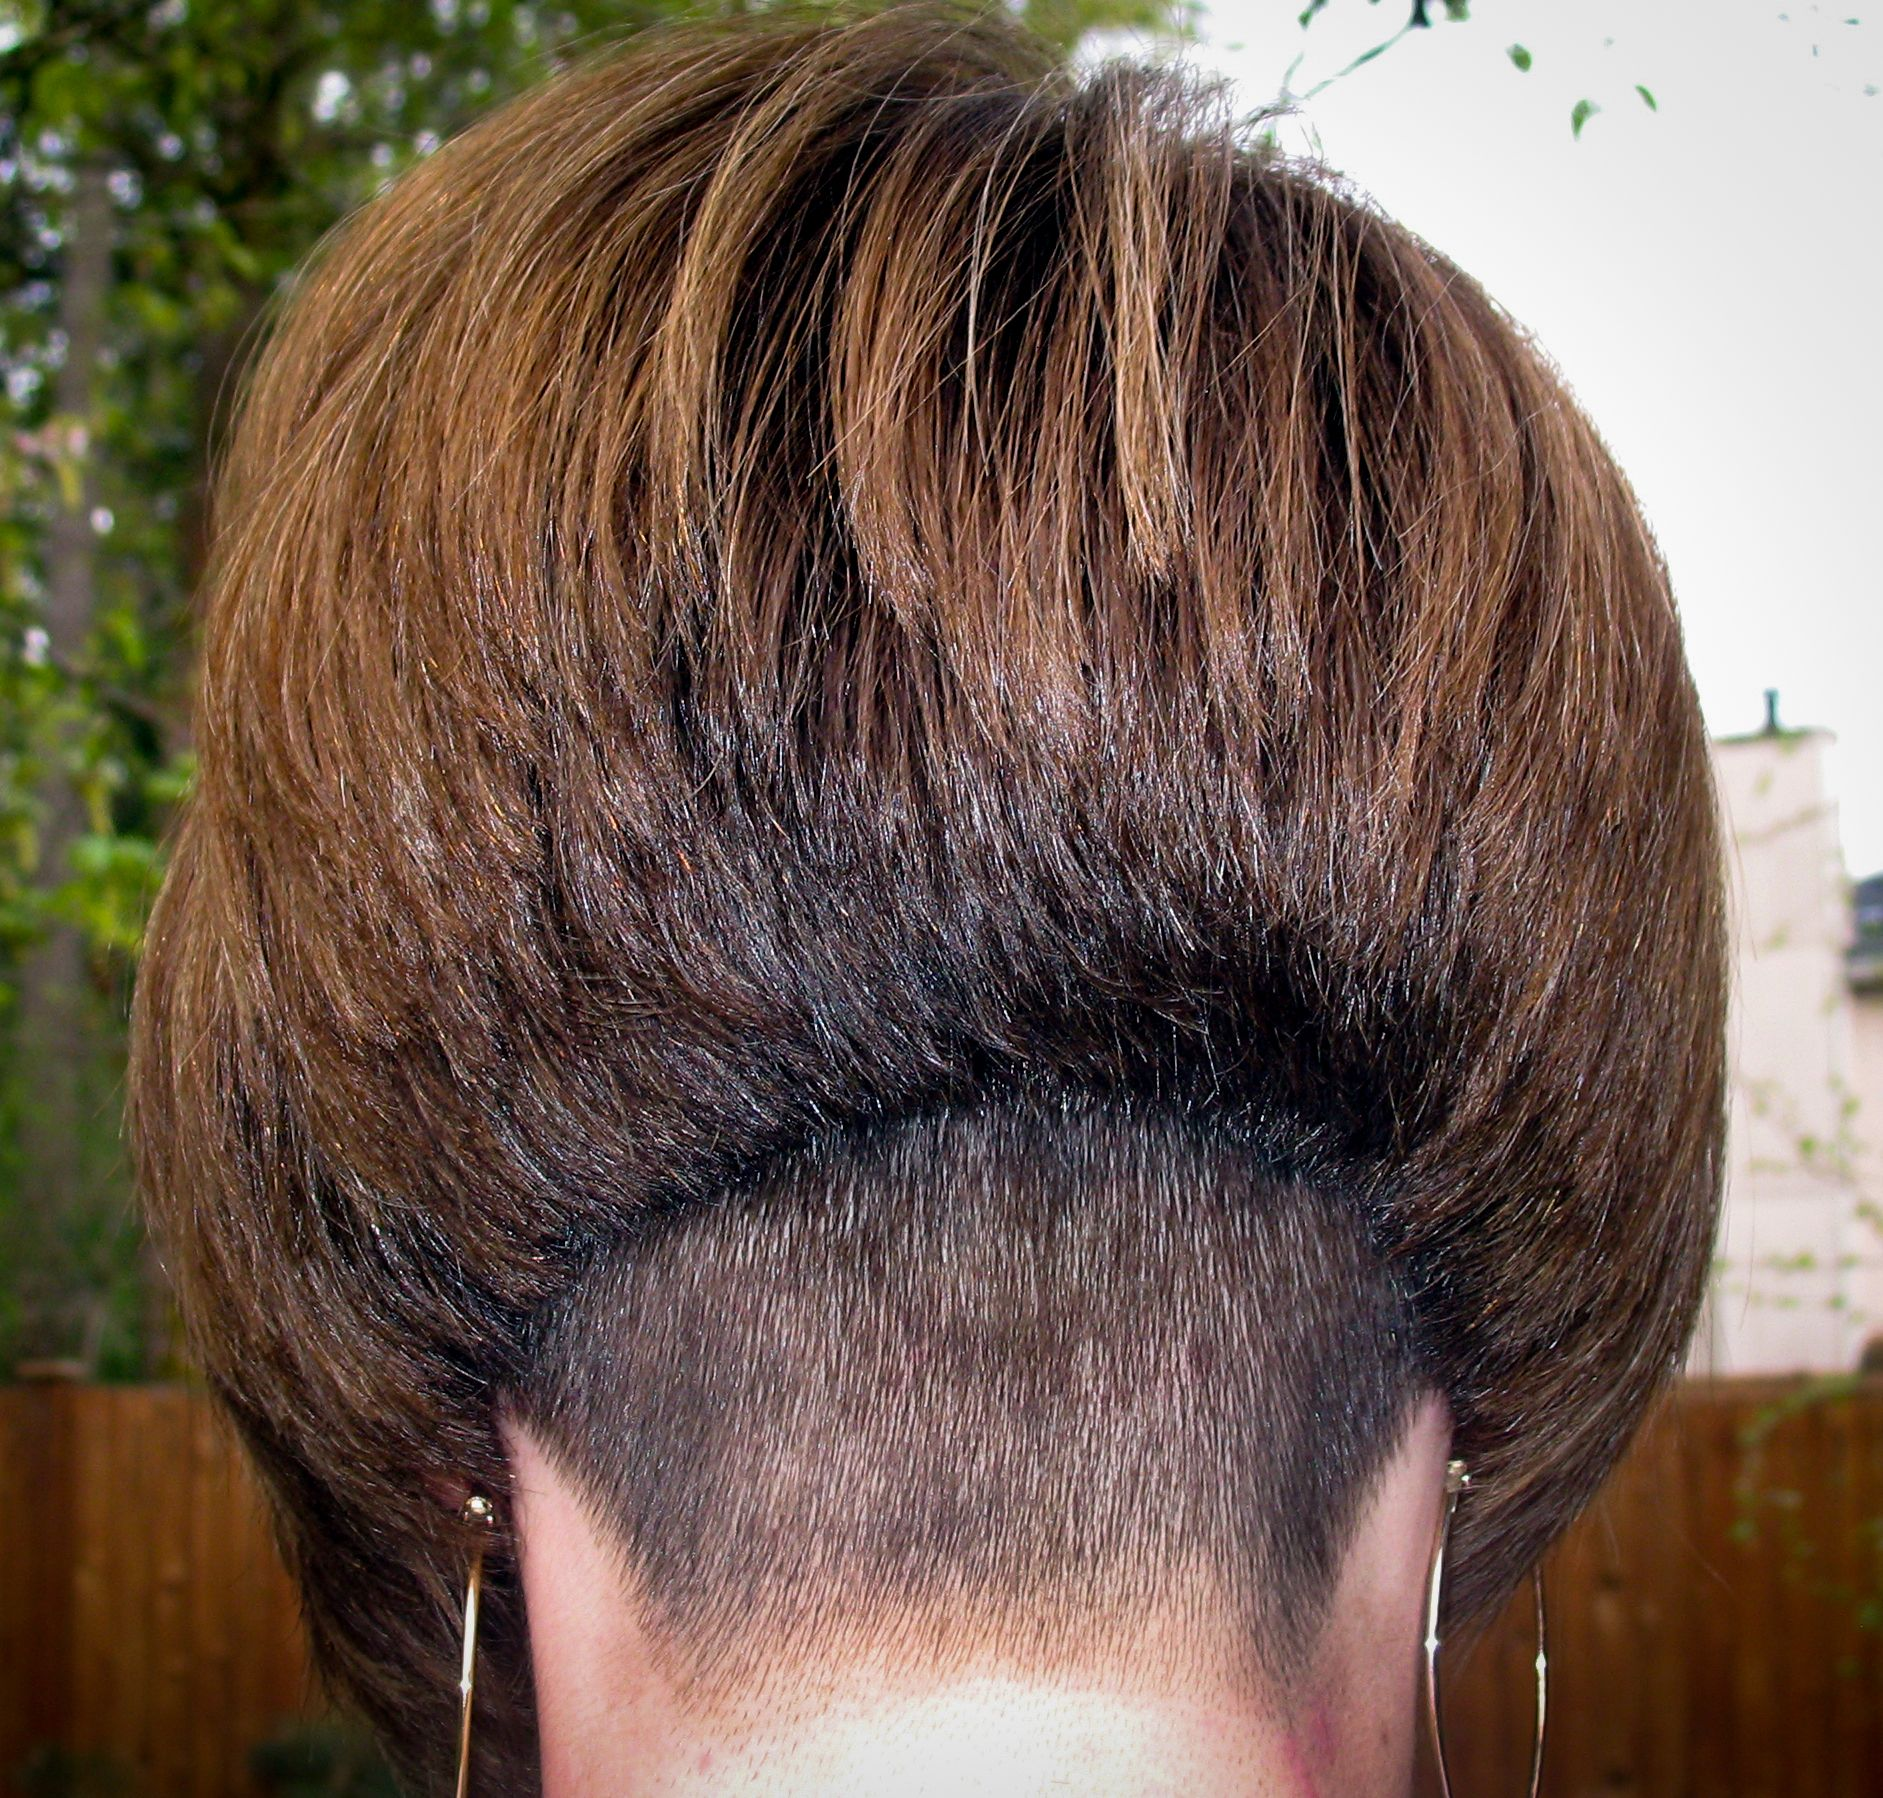 Surprising Mrs Cb From The Coolbobs Com Website Hair Undercuts Hairstyles For Men Maxibearus